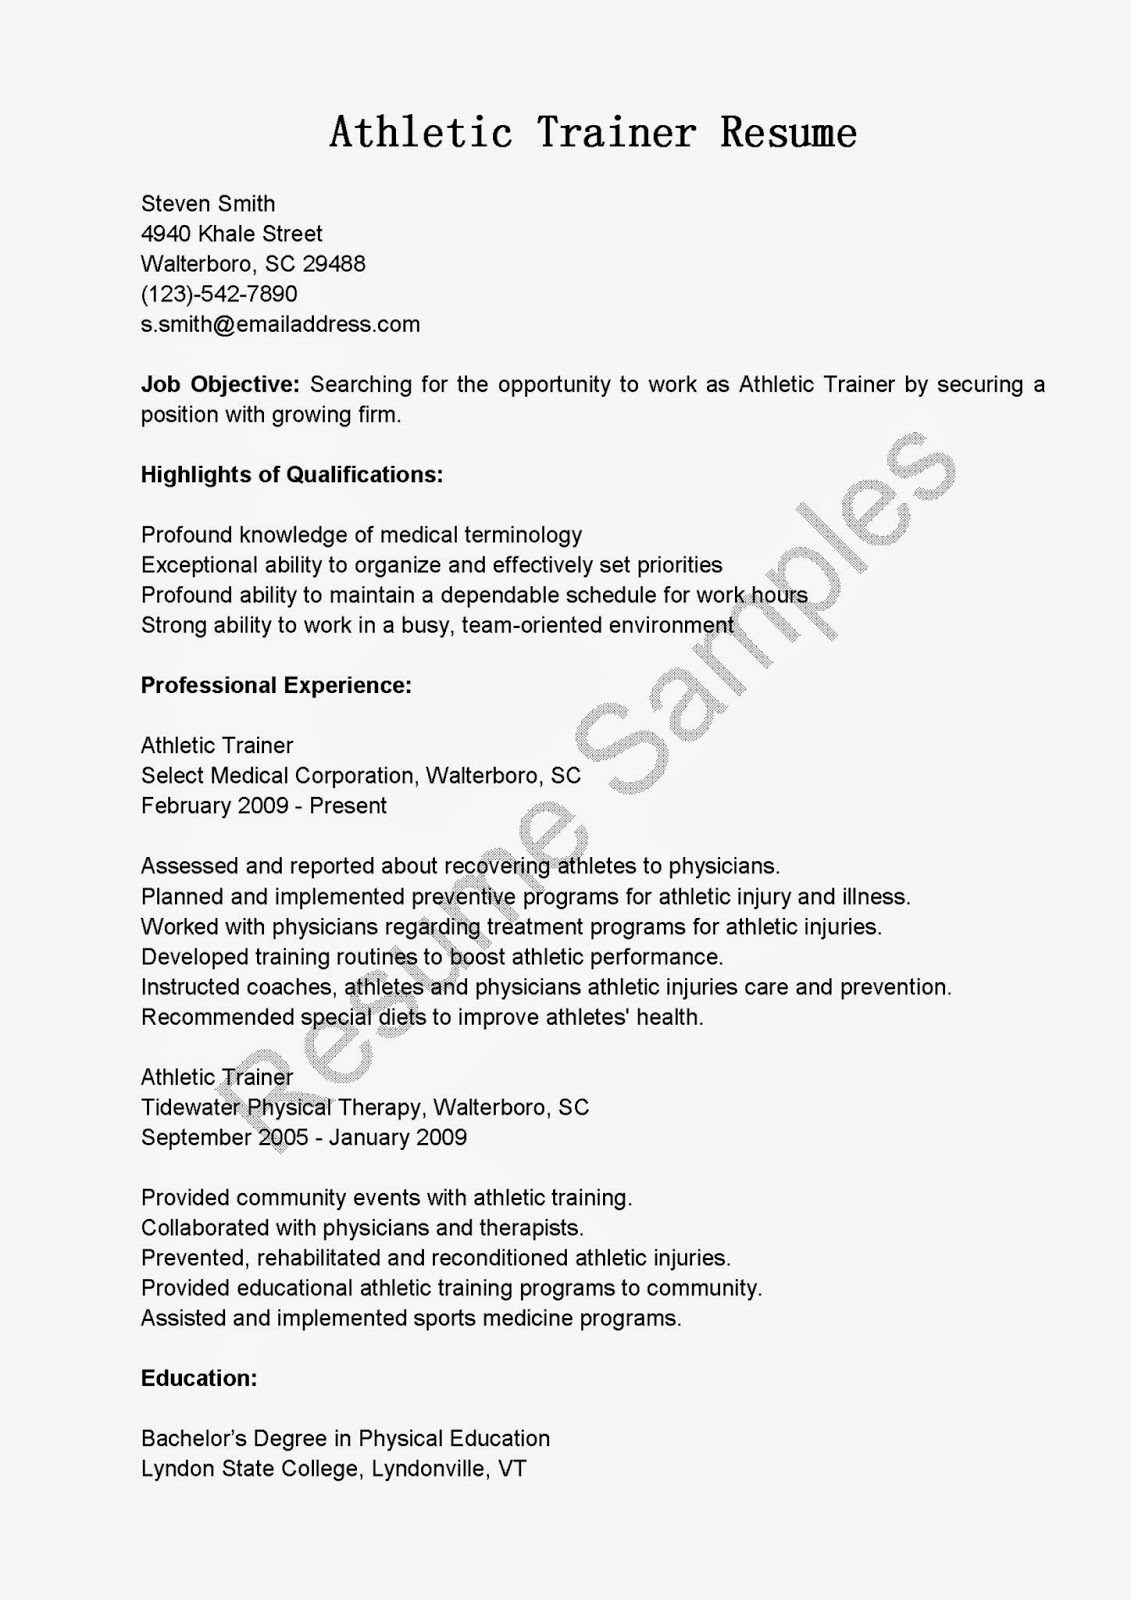 Sample Trainer Resume Resume Samples Athletic Trainer Resume Sample